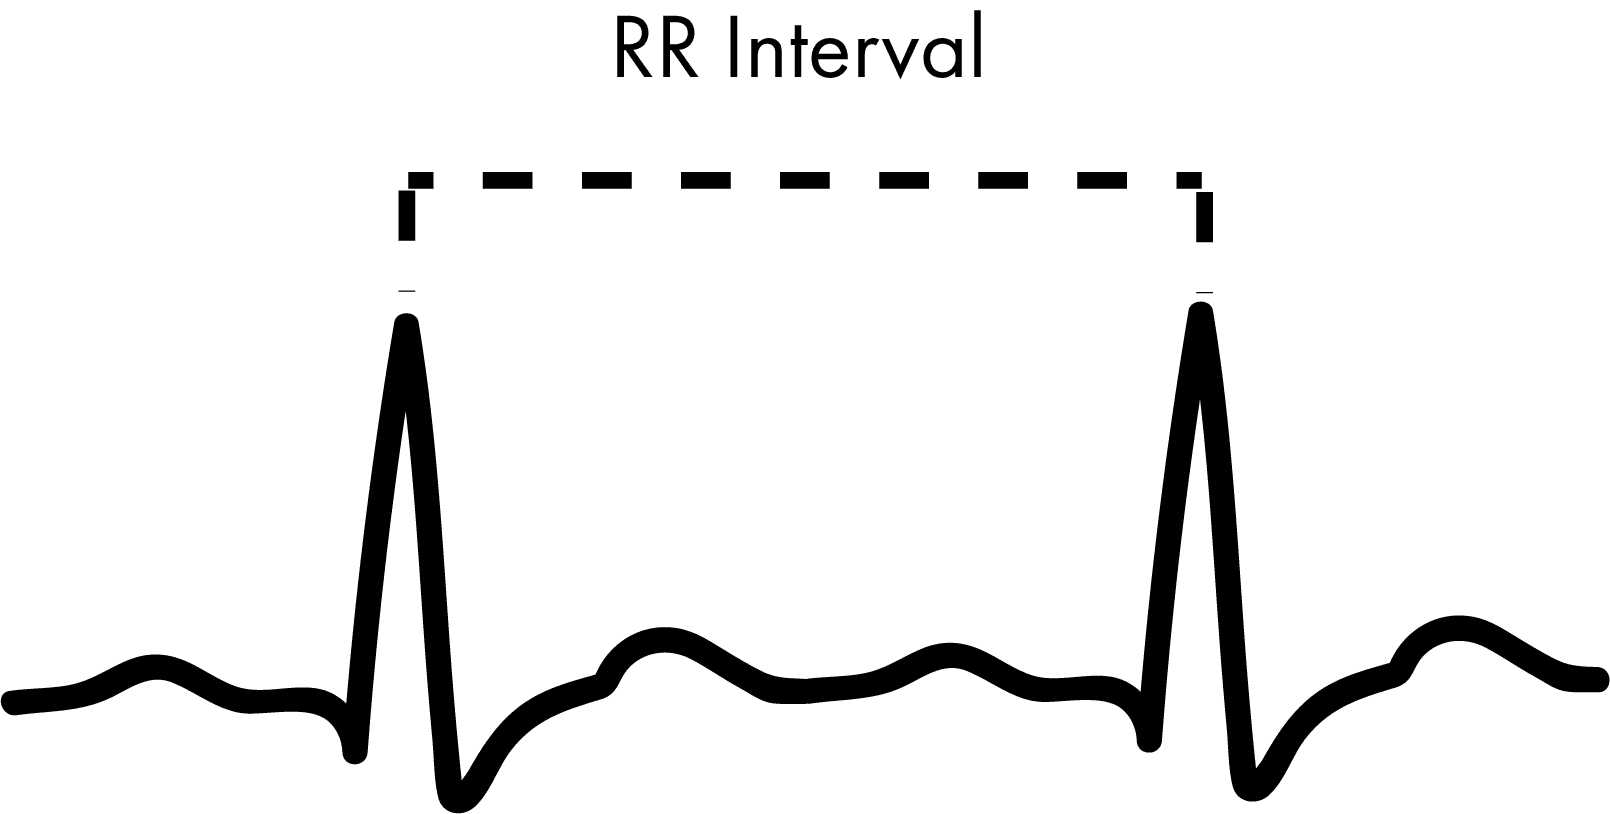 Heart Rate Variability - How to Analyze ECG Data - iMotions